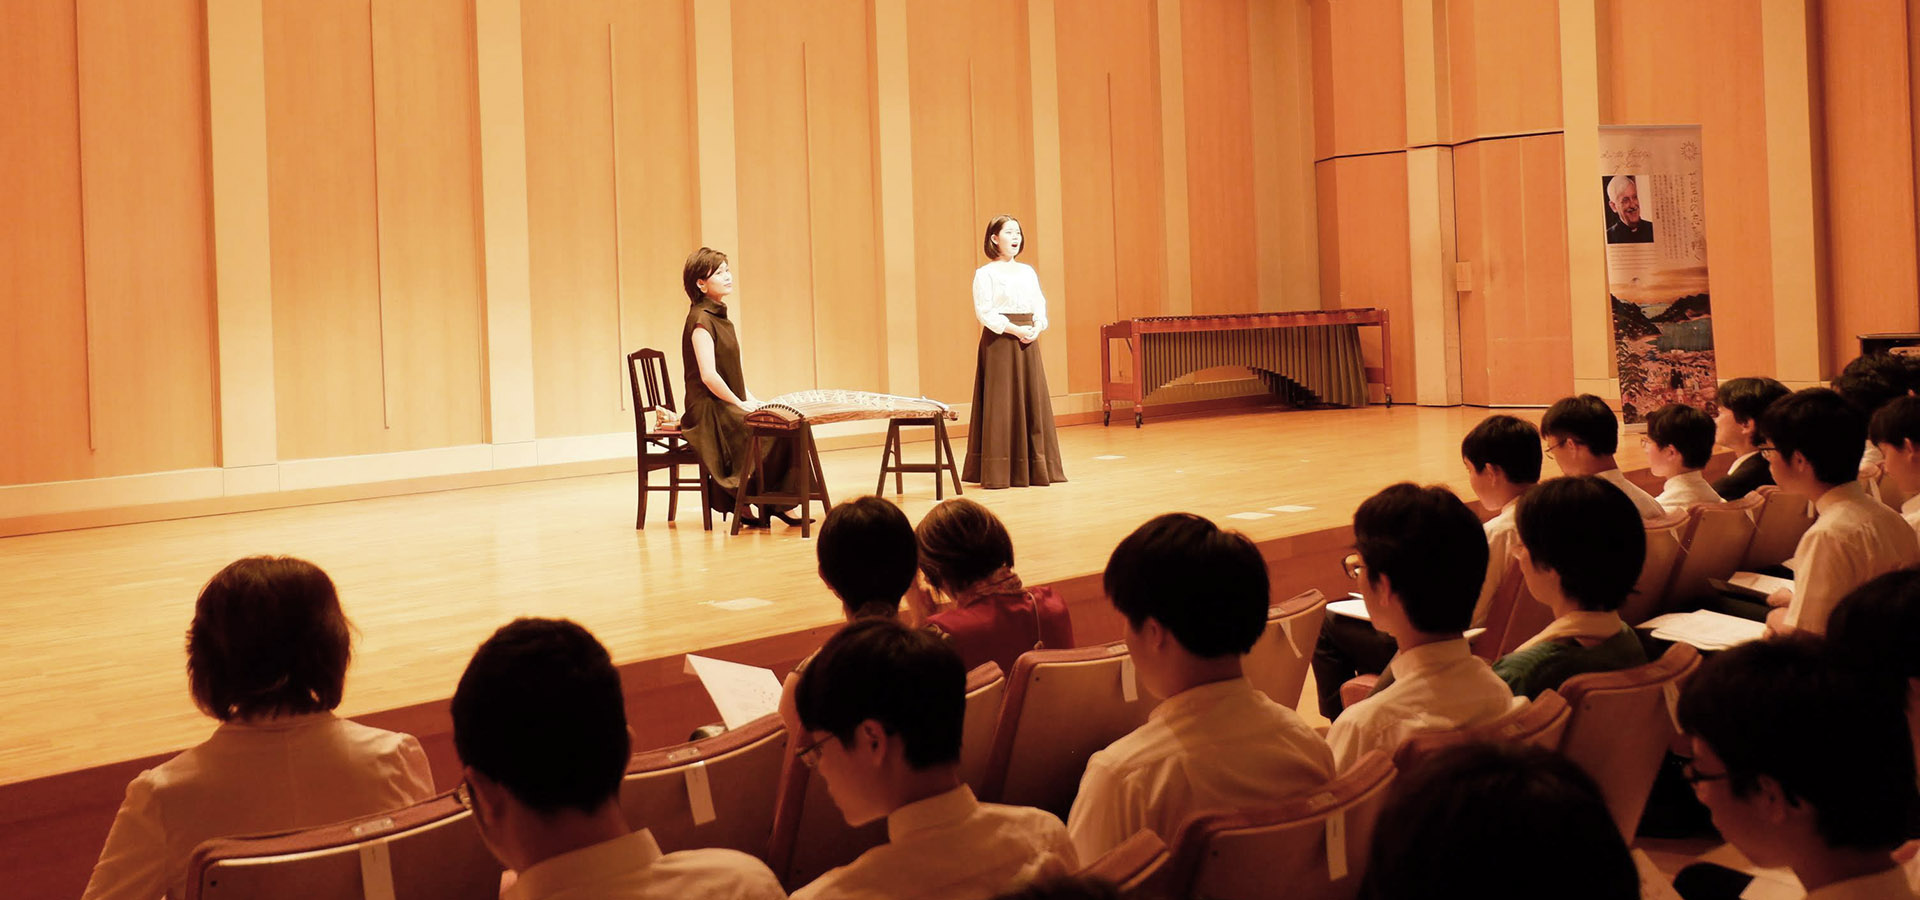 Music and Jesuit tradition go hand in hand in Hiroshima